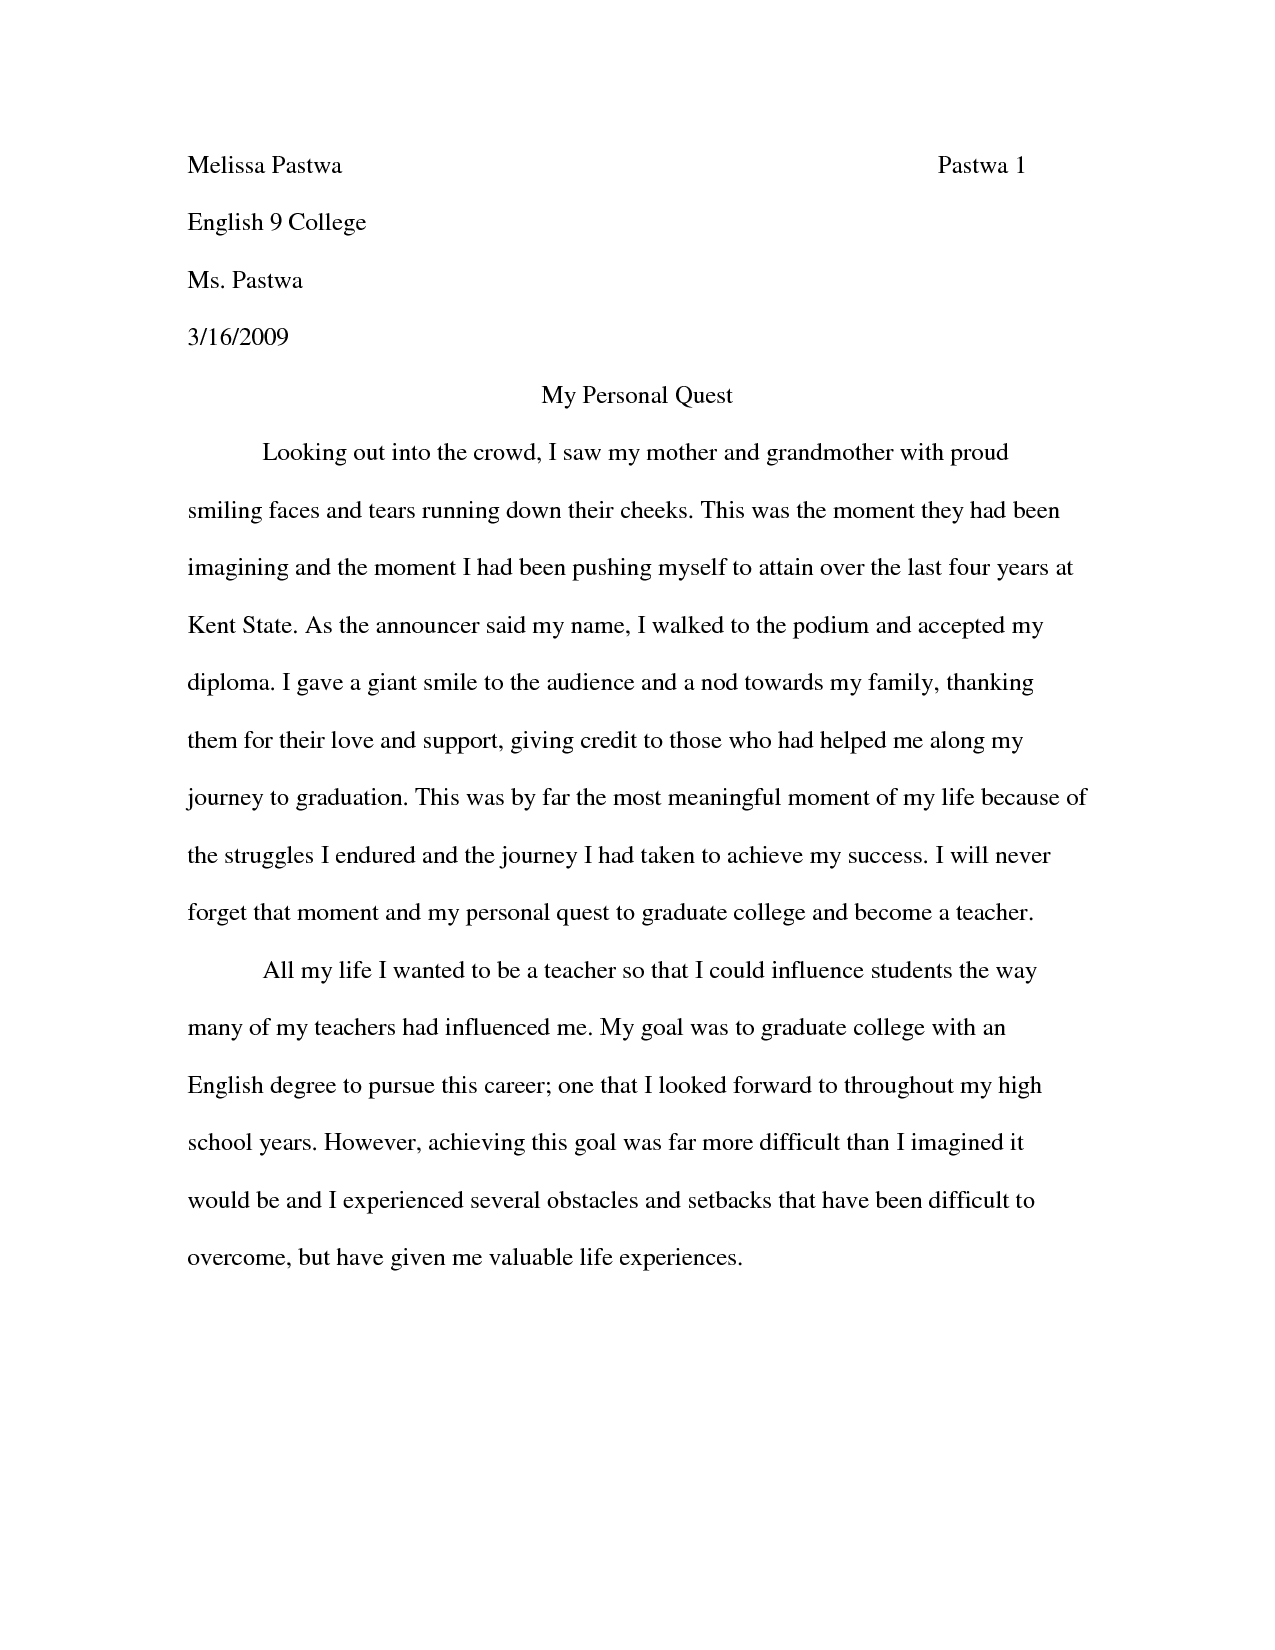 009 Writing Narrative Essay Example Dialogue Of L Amazing A Pdf Sample High School Personal Outline Full